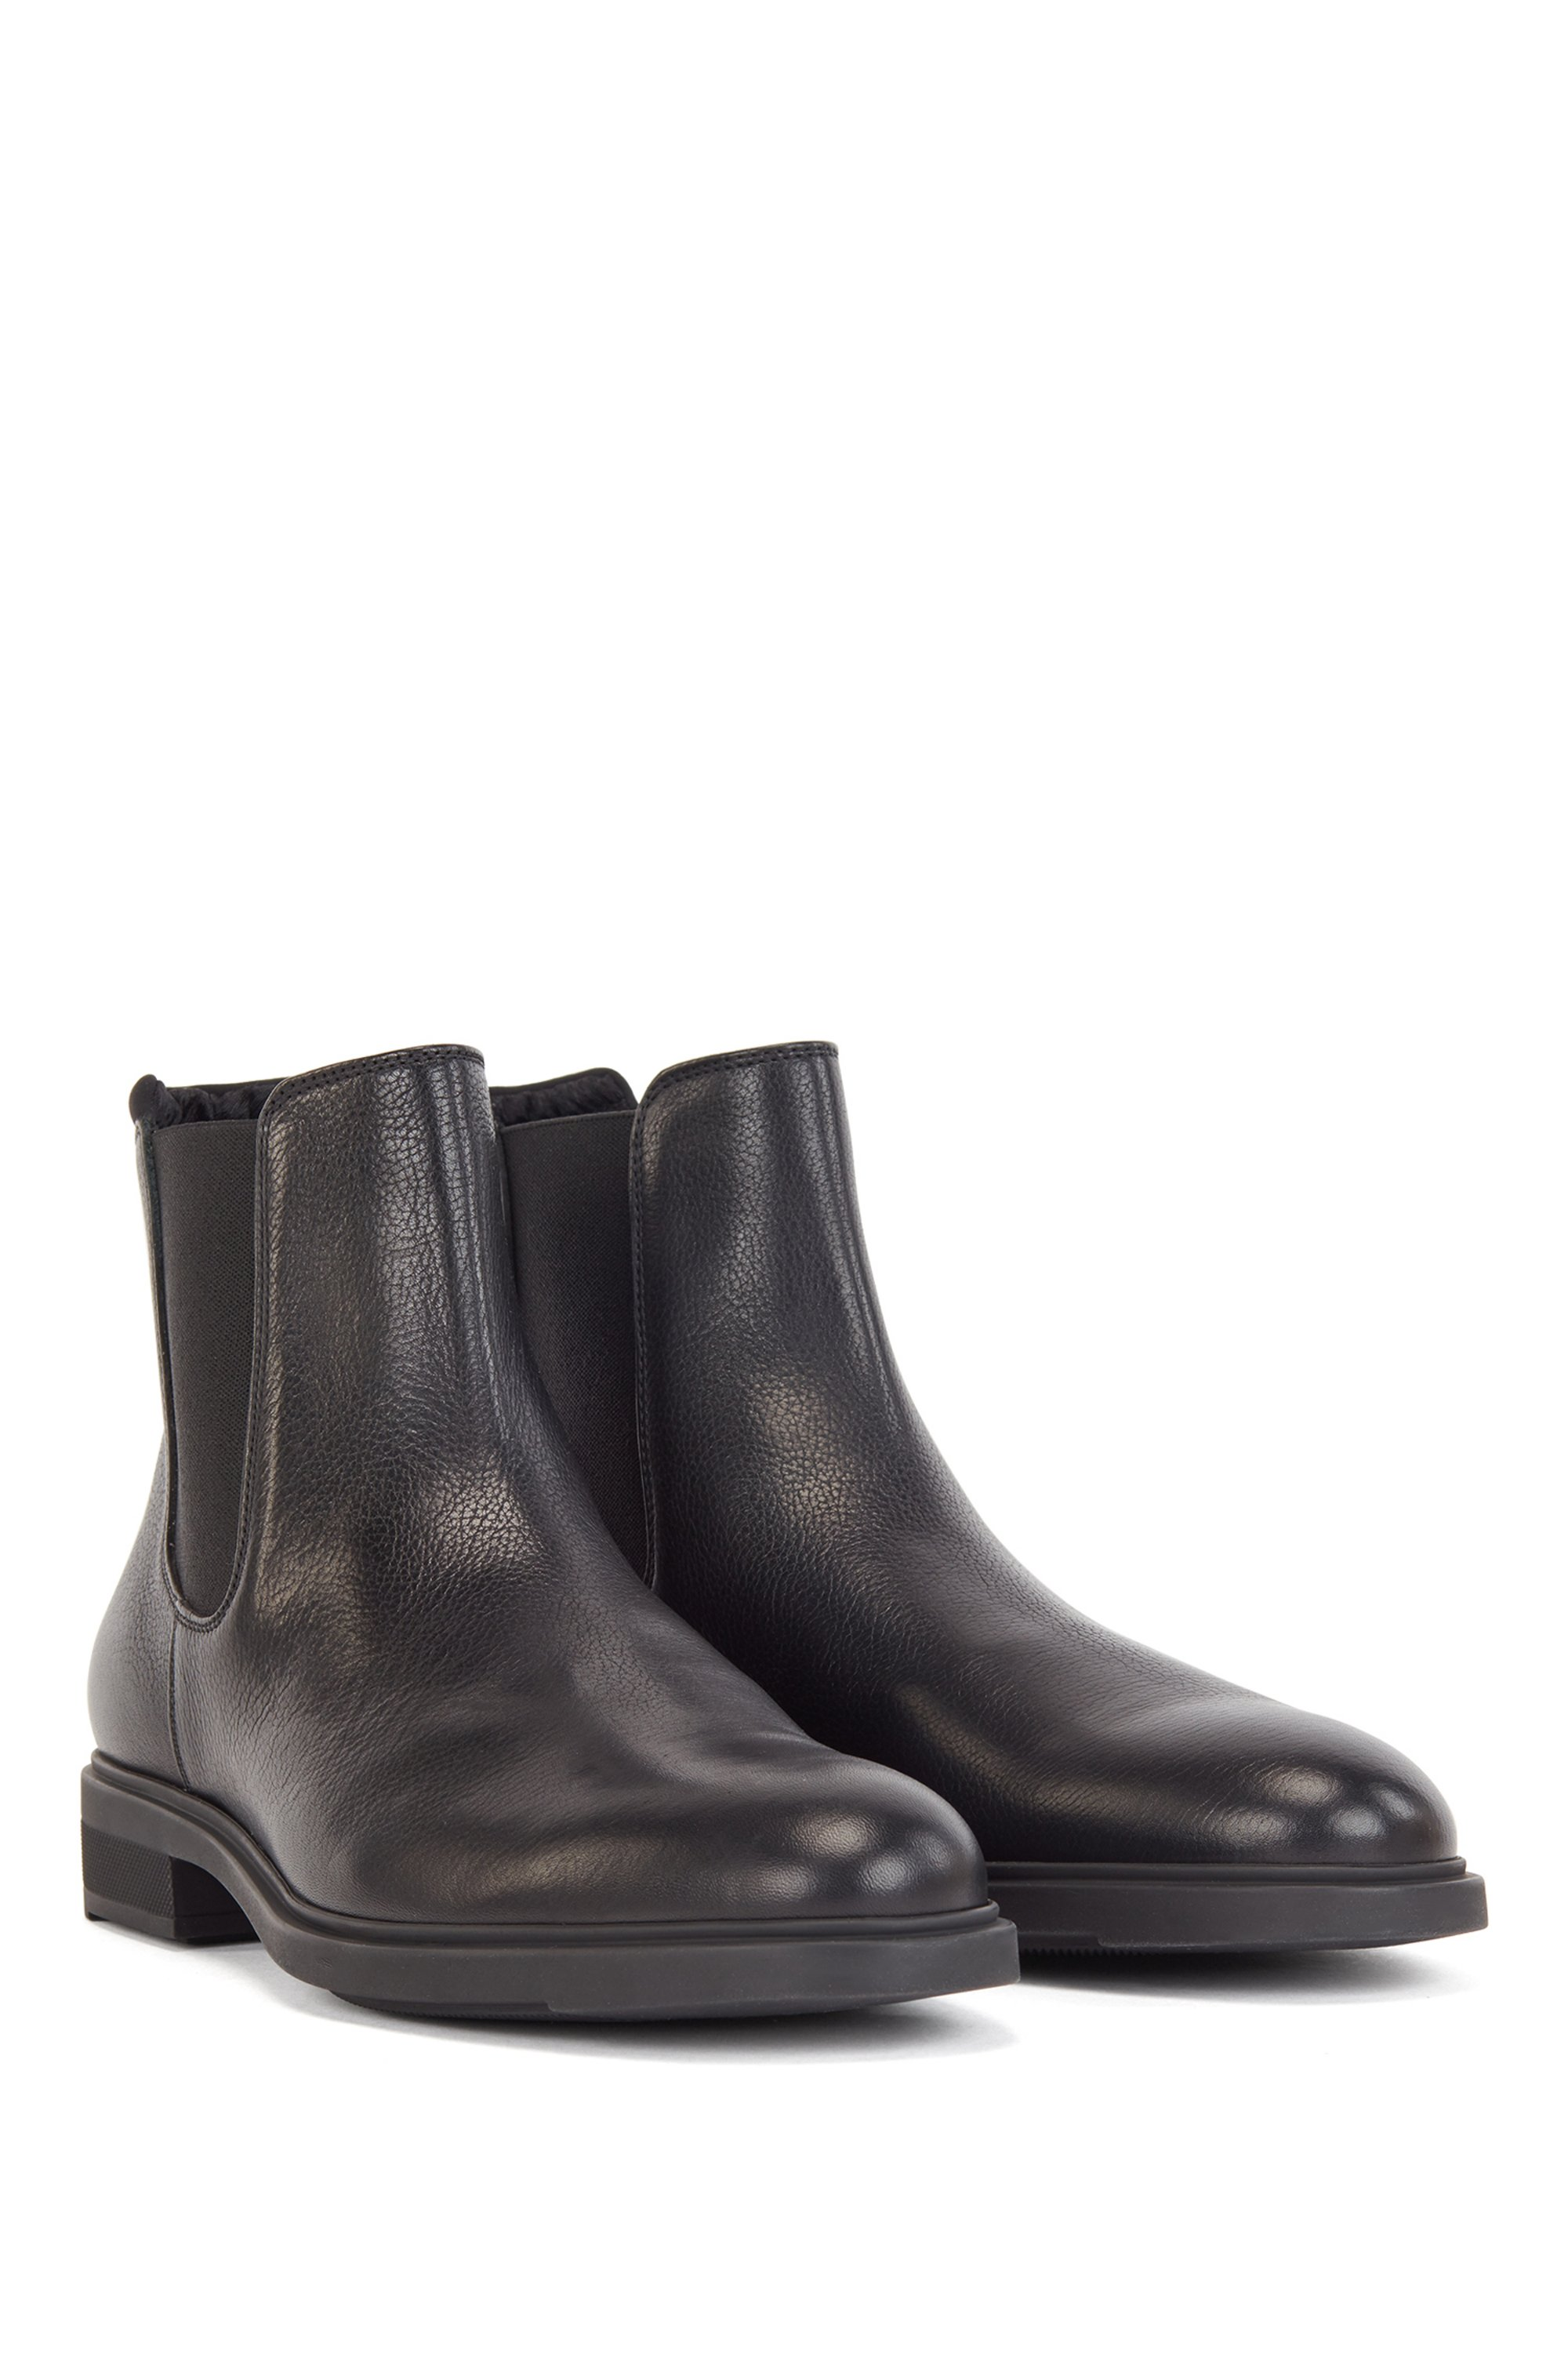 Italian-made Chelsea boots in leather with Outlast® lining